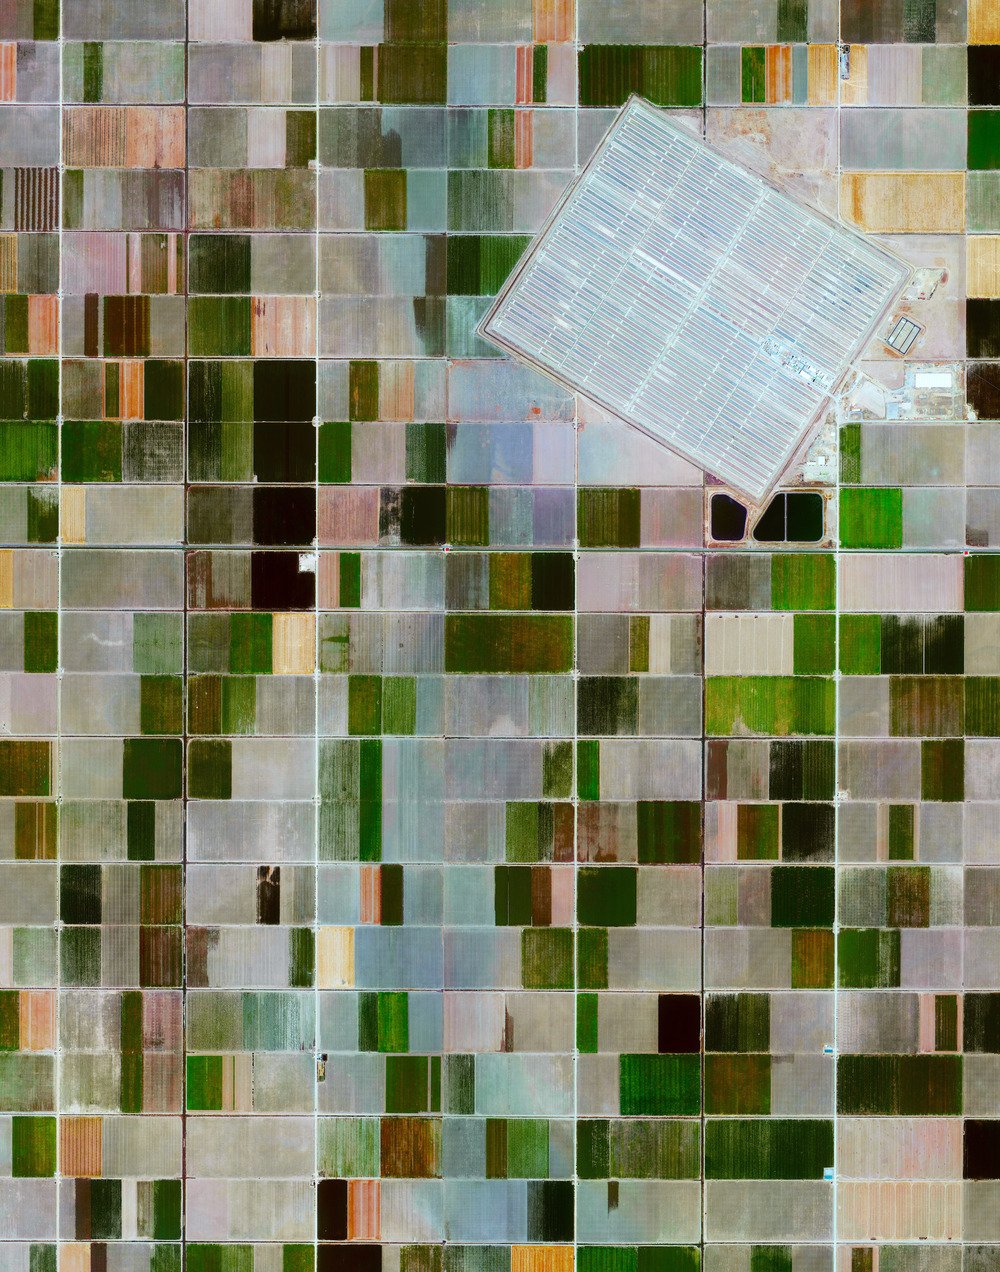 7/7/2016 Lebrija 1 Solar Power Plant Lebrija, Spain 37.007977710°, -6.049280818°   The Lebrija 1 Solar Power Plant in Lebrija, Spain is comprised of approximately 170,000 individual mirrors installed on 6,048 parabolic troughs. If placed next to one another, the troughs would extend for 60 kilometers.